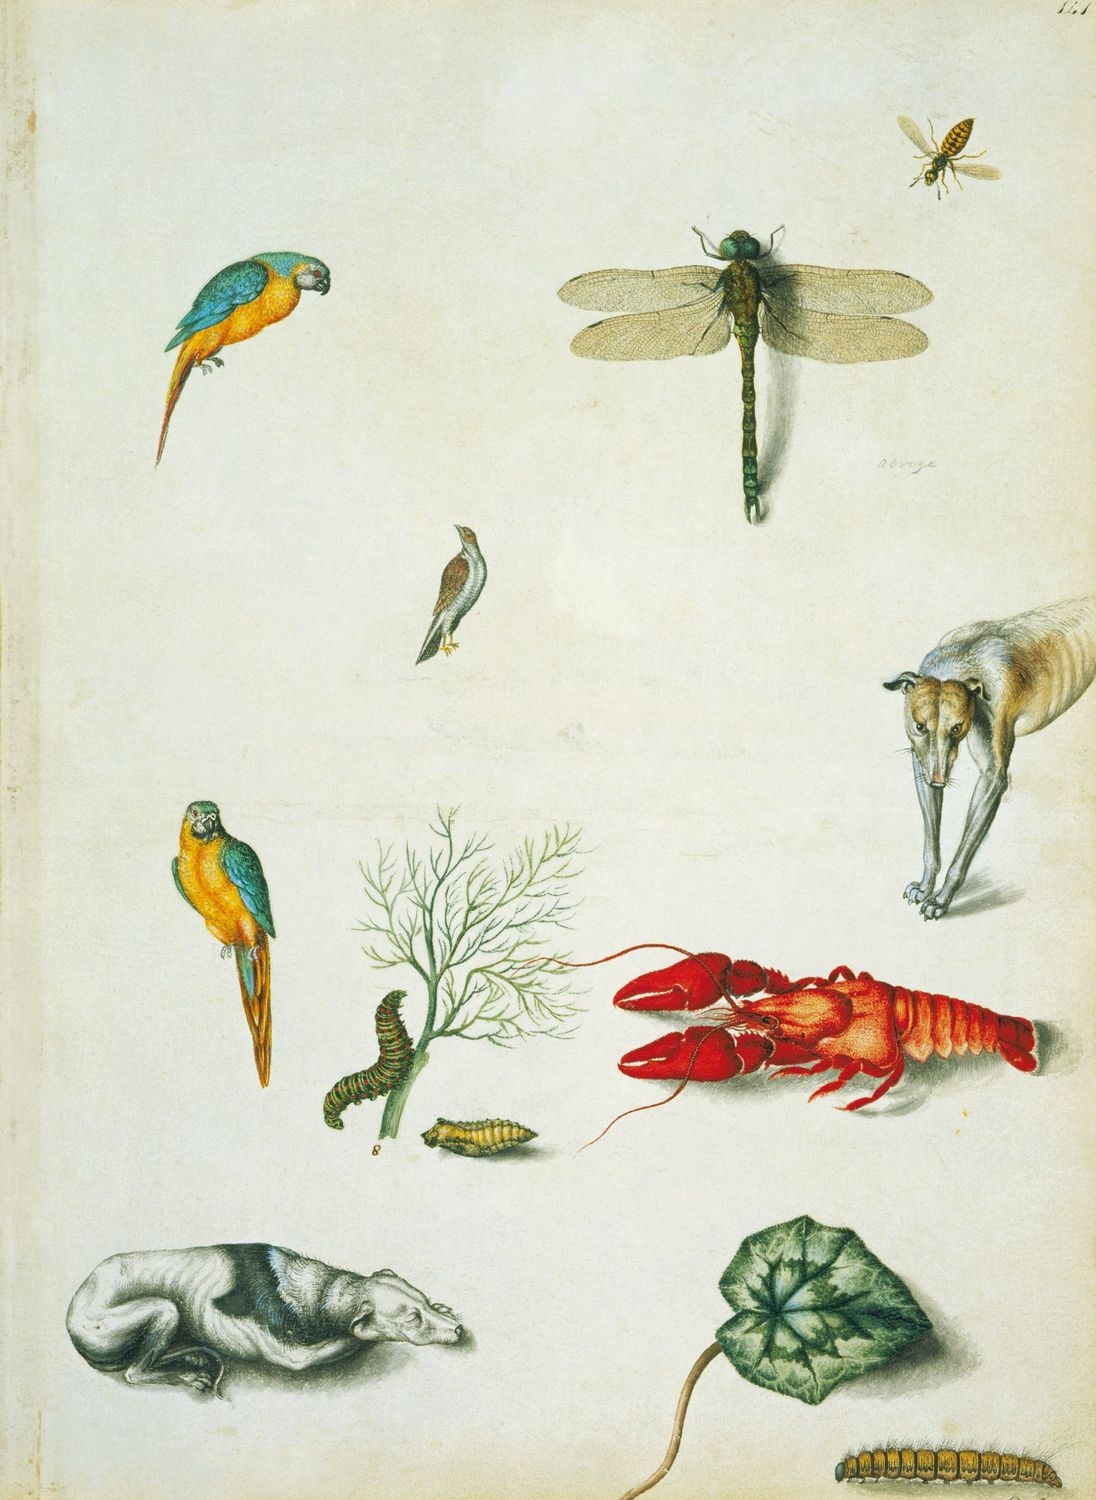 Blue and yellow macaws, southern hawker, wasp, unidentified bird, caterpillar and chrysalis of swallowtail butterfly, crayfish, greyhounds, cylcamen leaf, and oak eggar caterpillar.